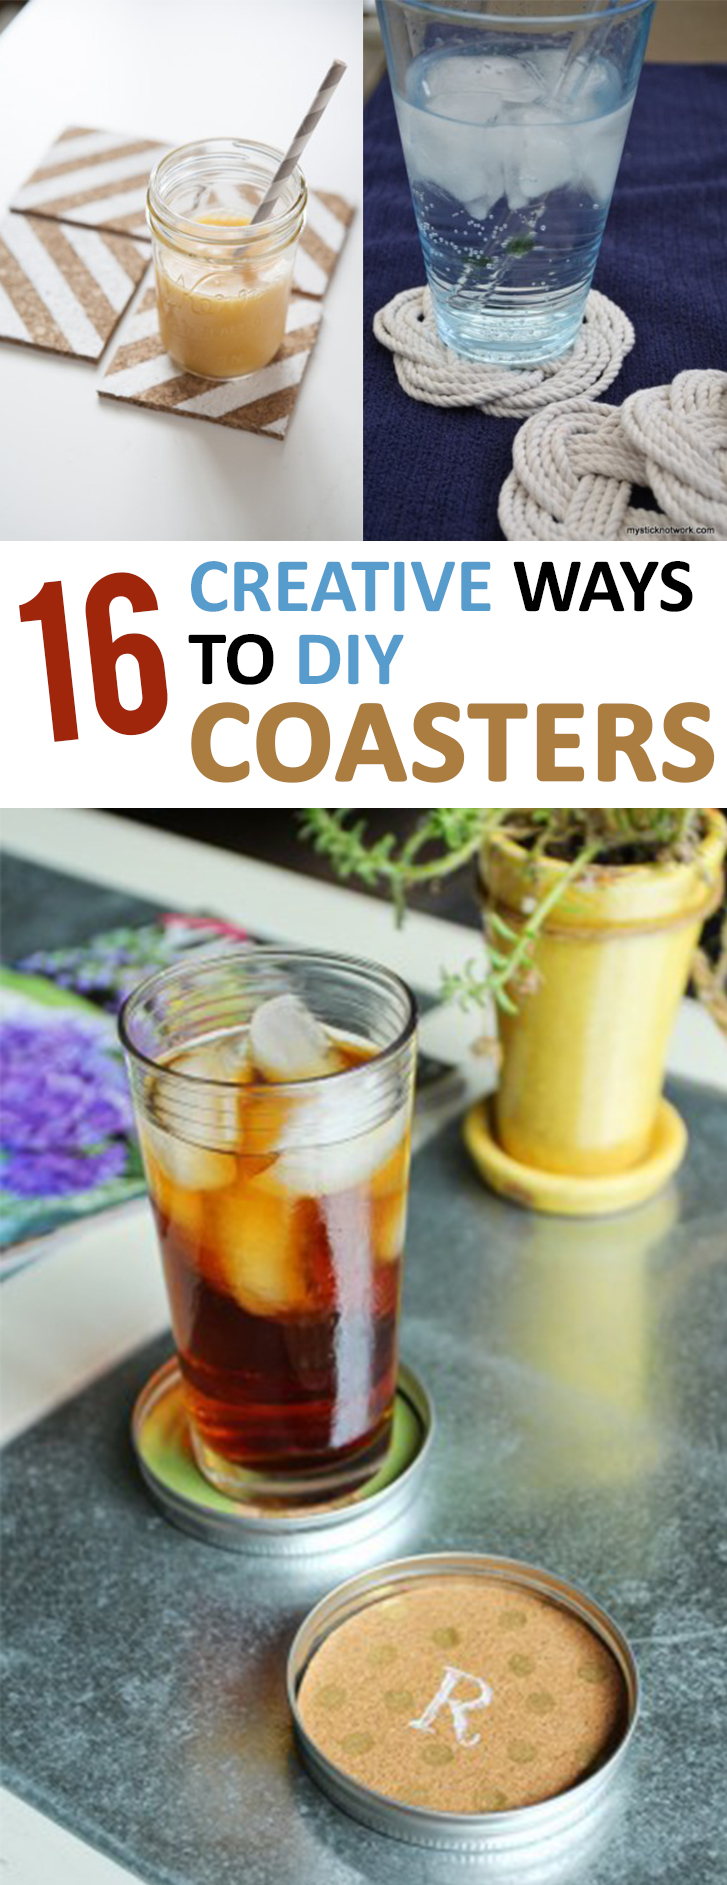 16 creative ways to diy coasters for Creative coasters